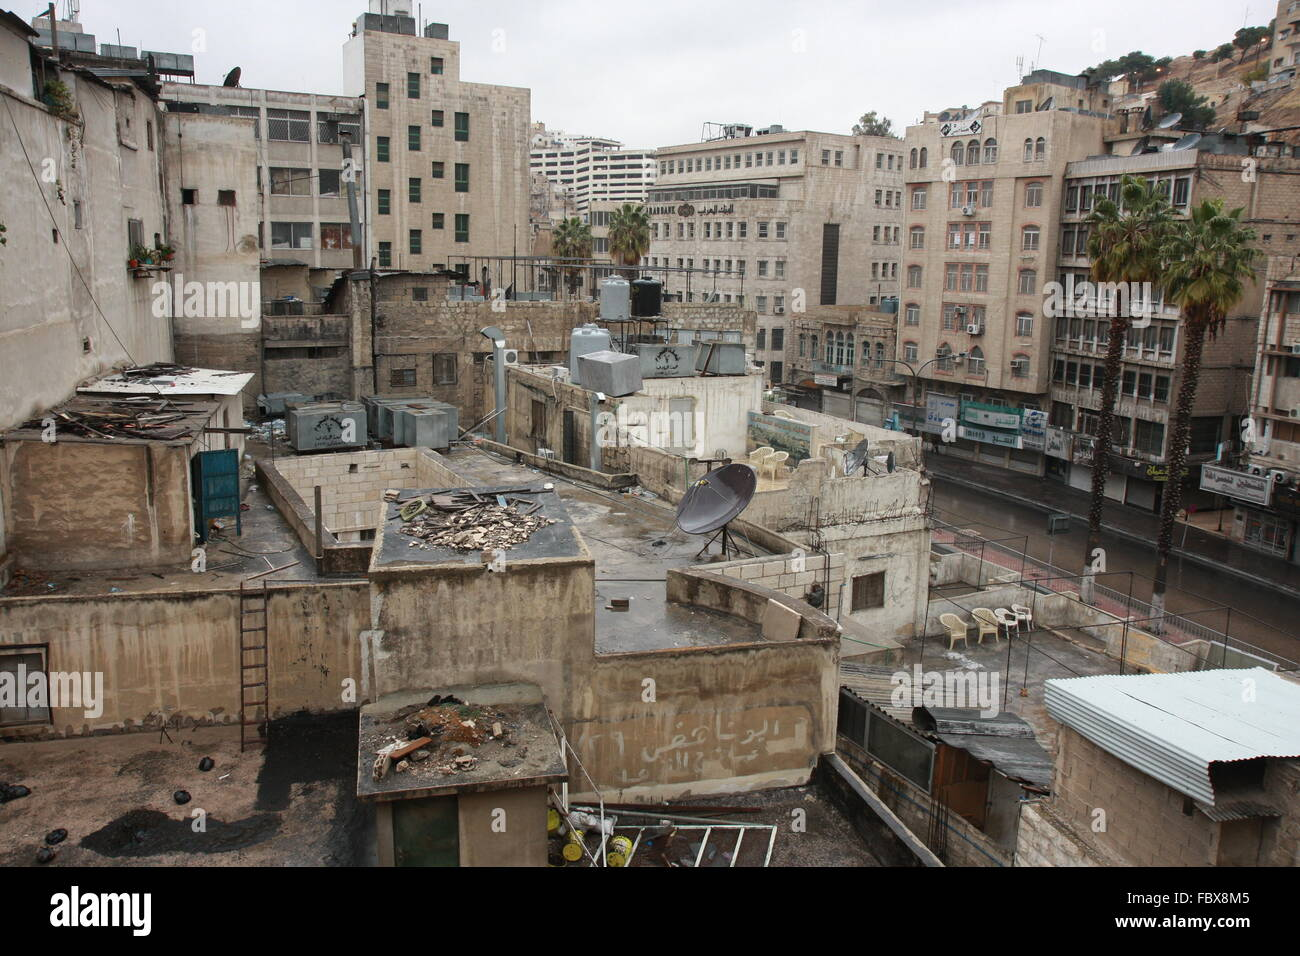 Amman Photo Stock